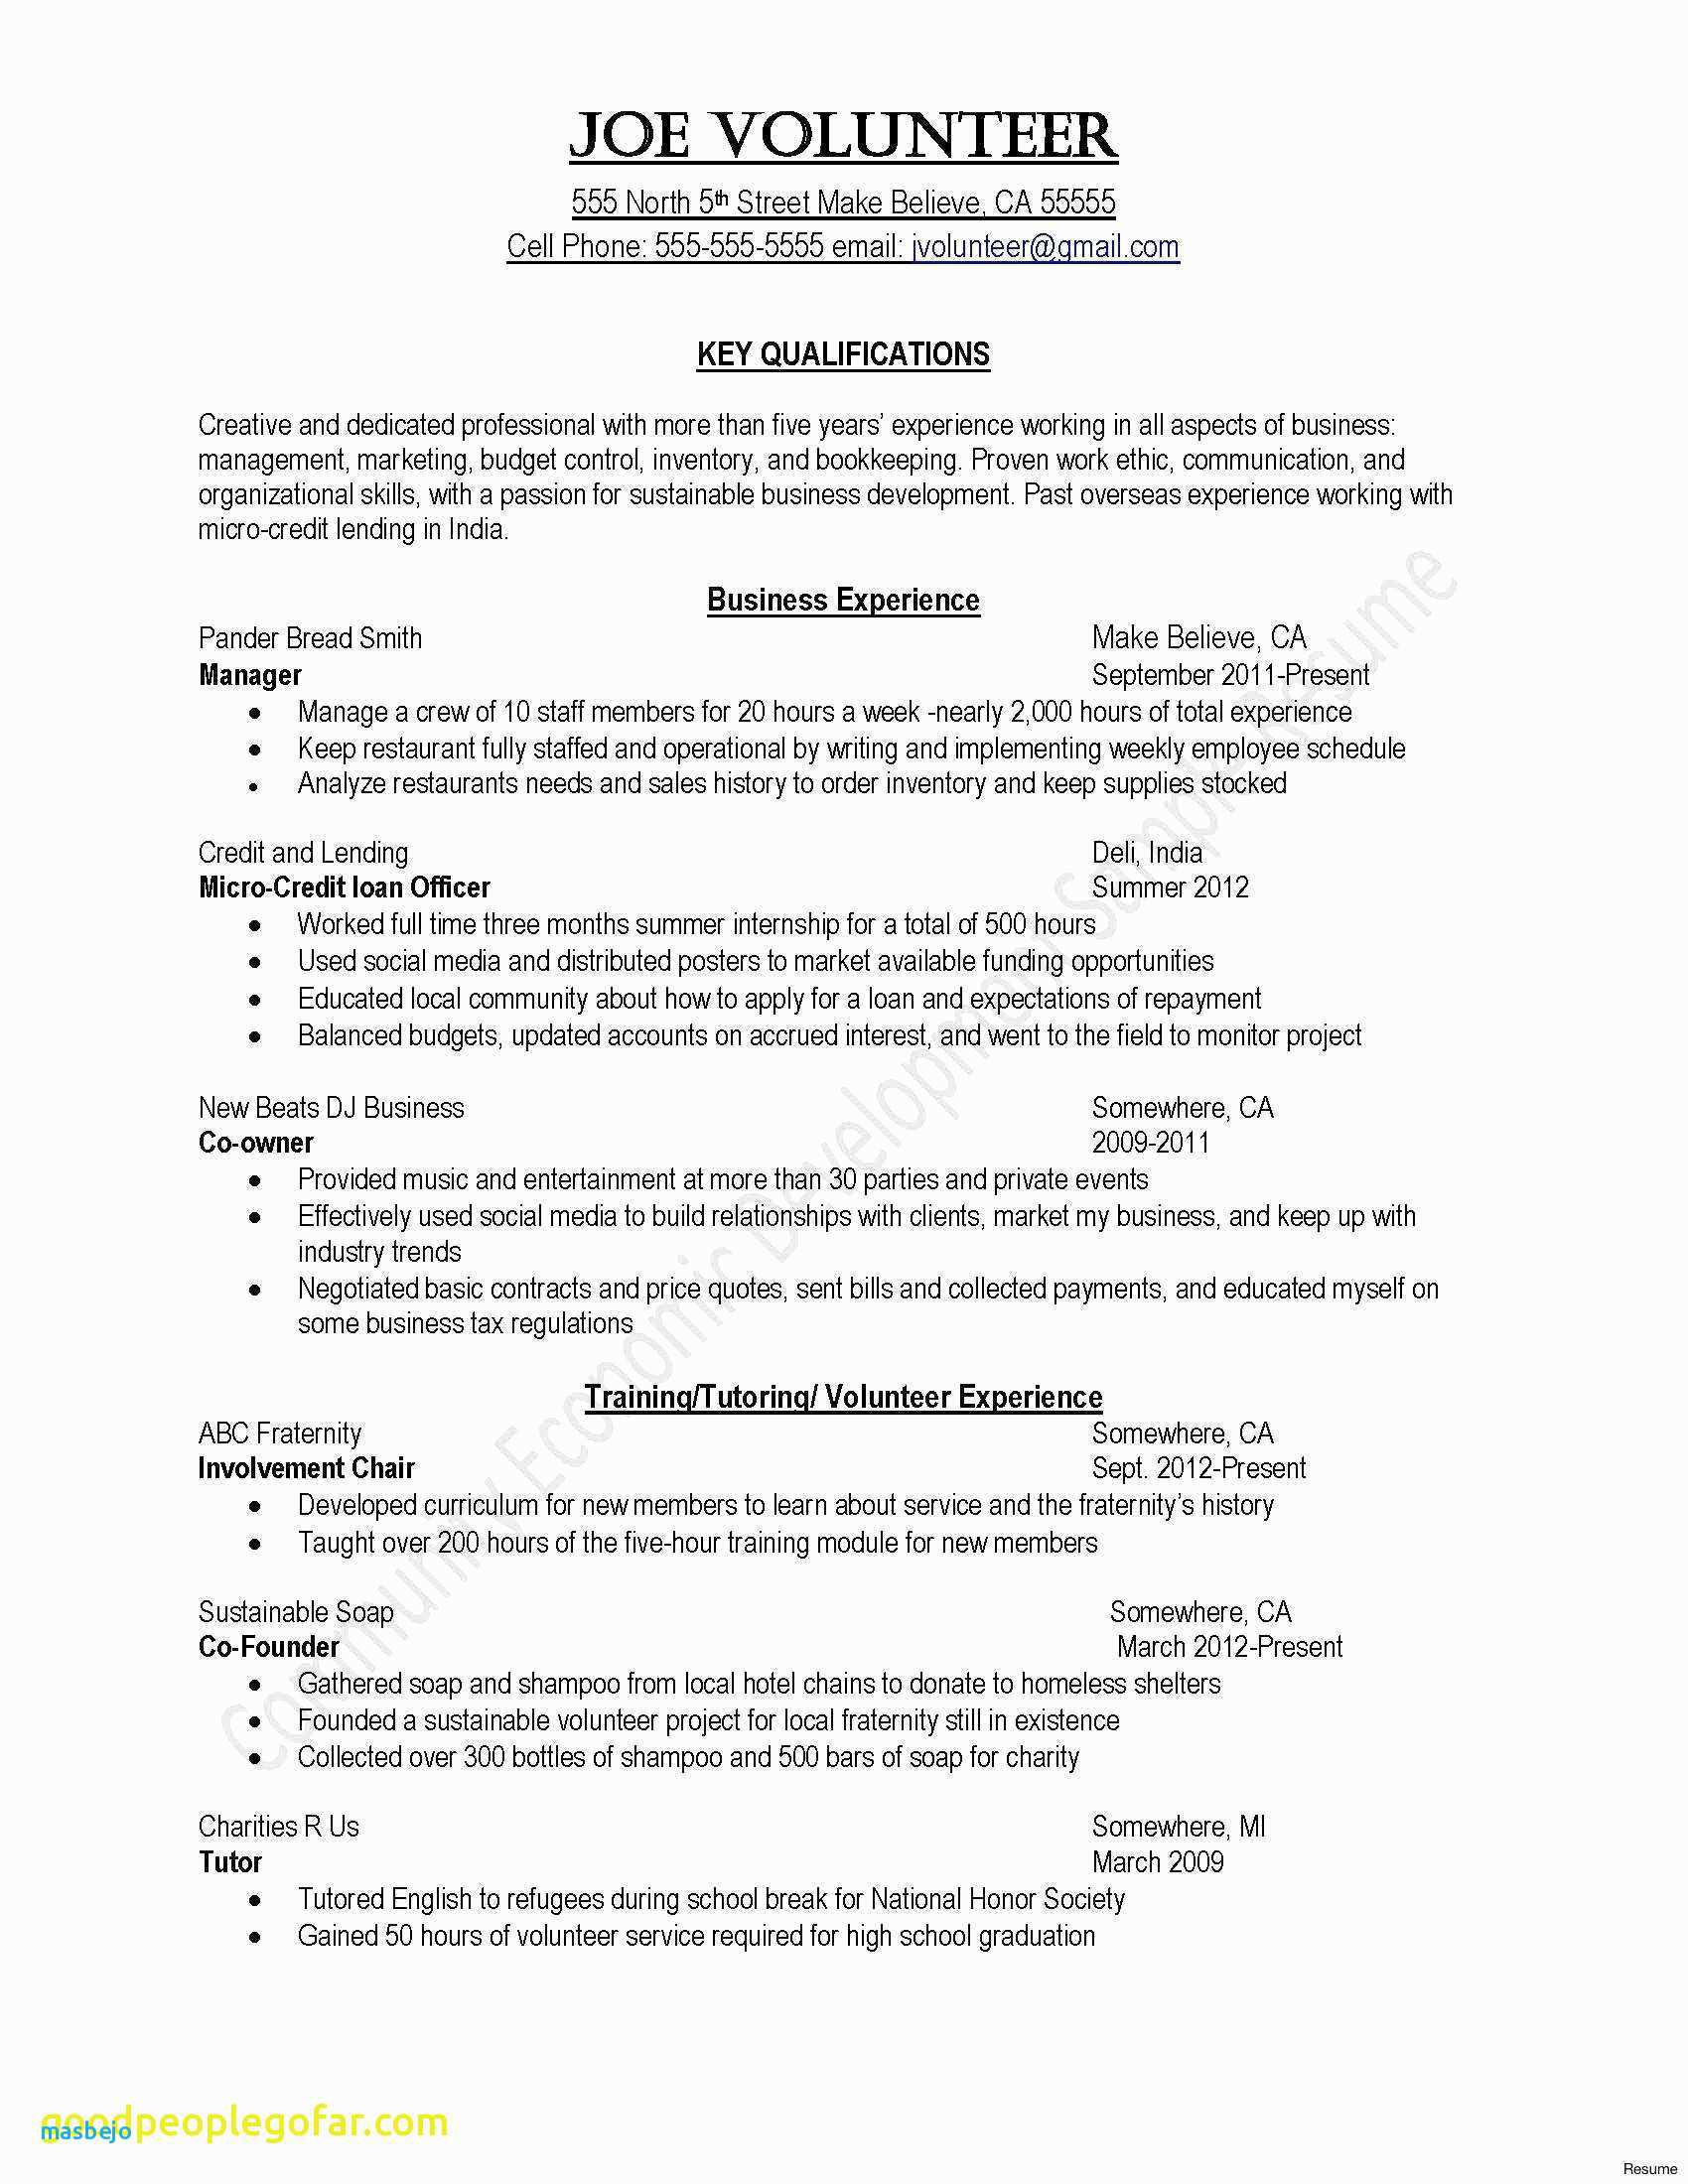 professional dance resume template example-Dance Resume Template Grapher Resume Sample Beautiful Resume Quotes 0d Aurelianmg 6-c